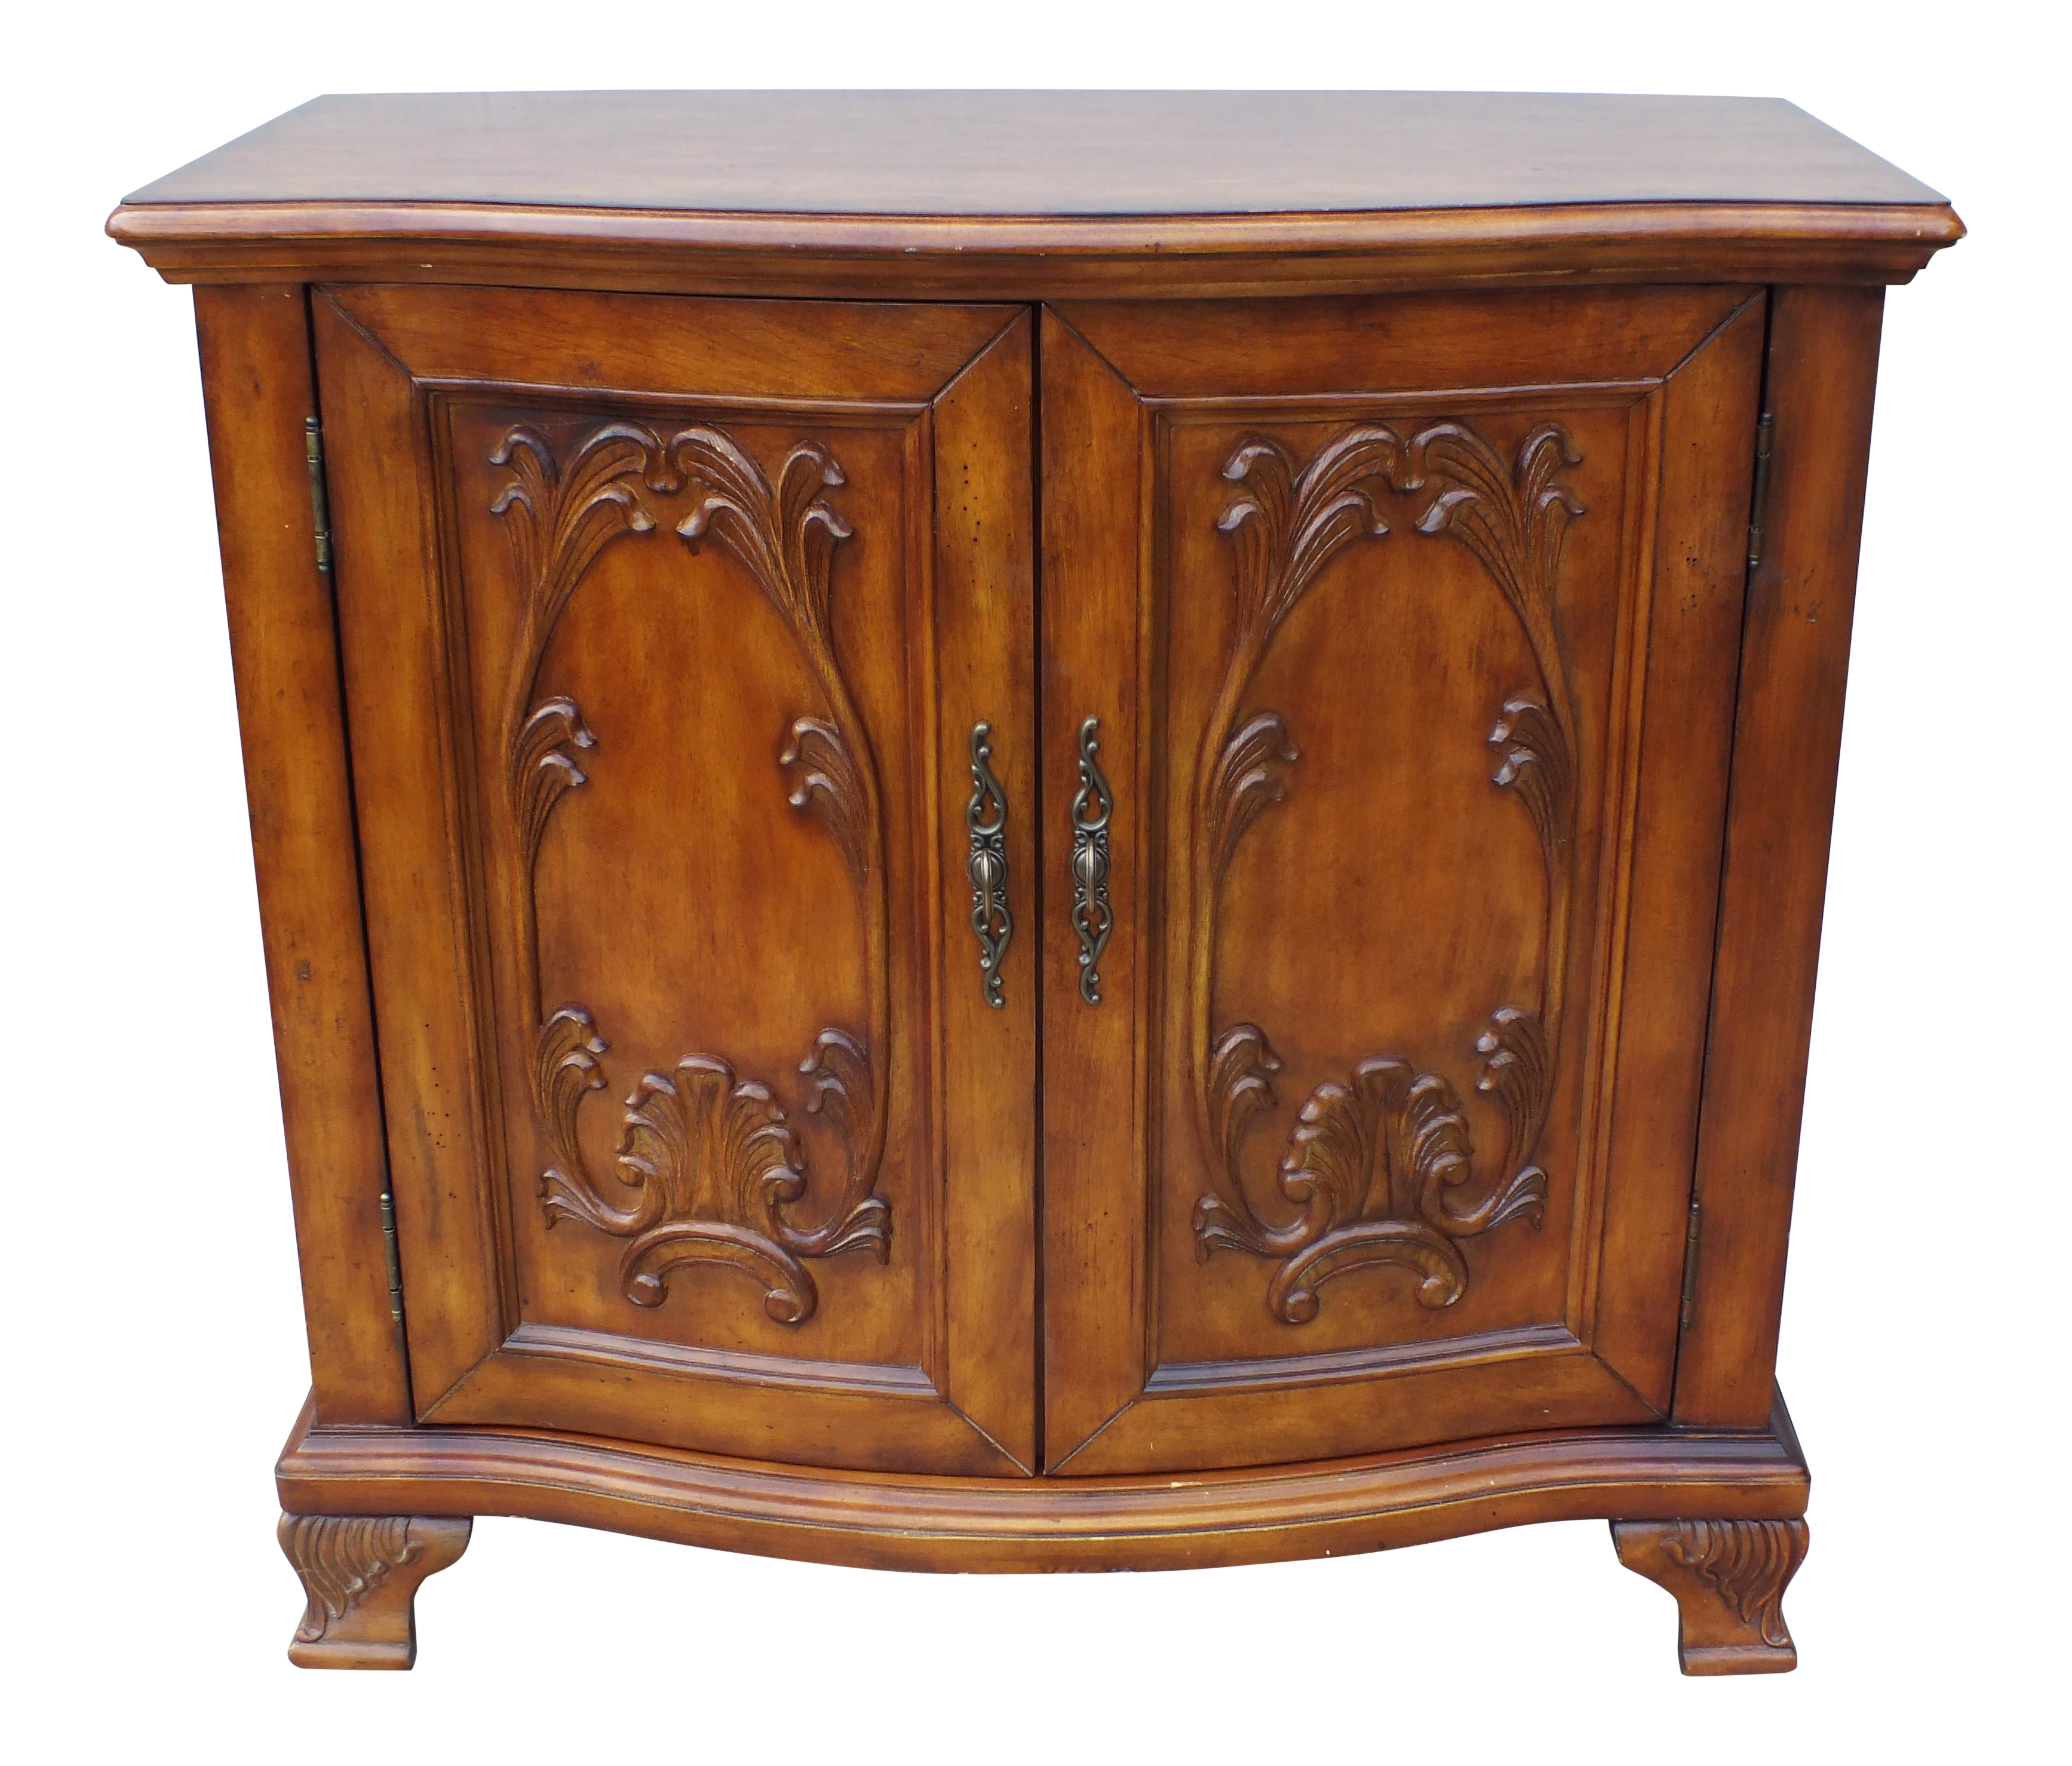 French Provincial Kitchen Cabinets: French Provincial 2-Door Cabinet Server